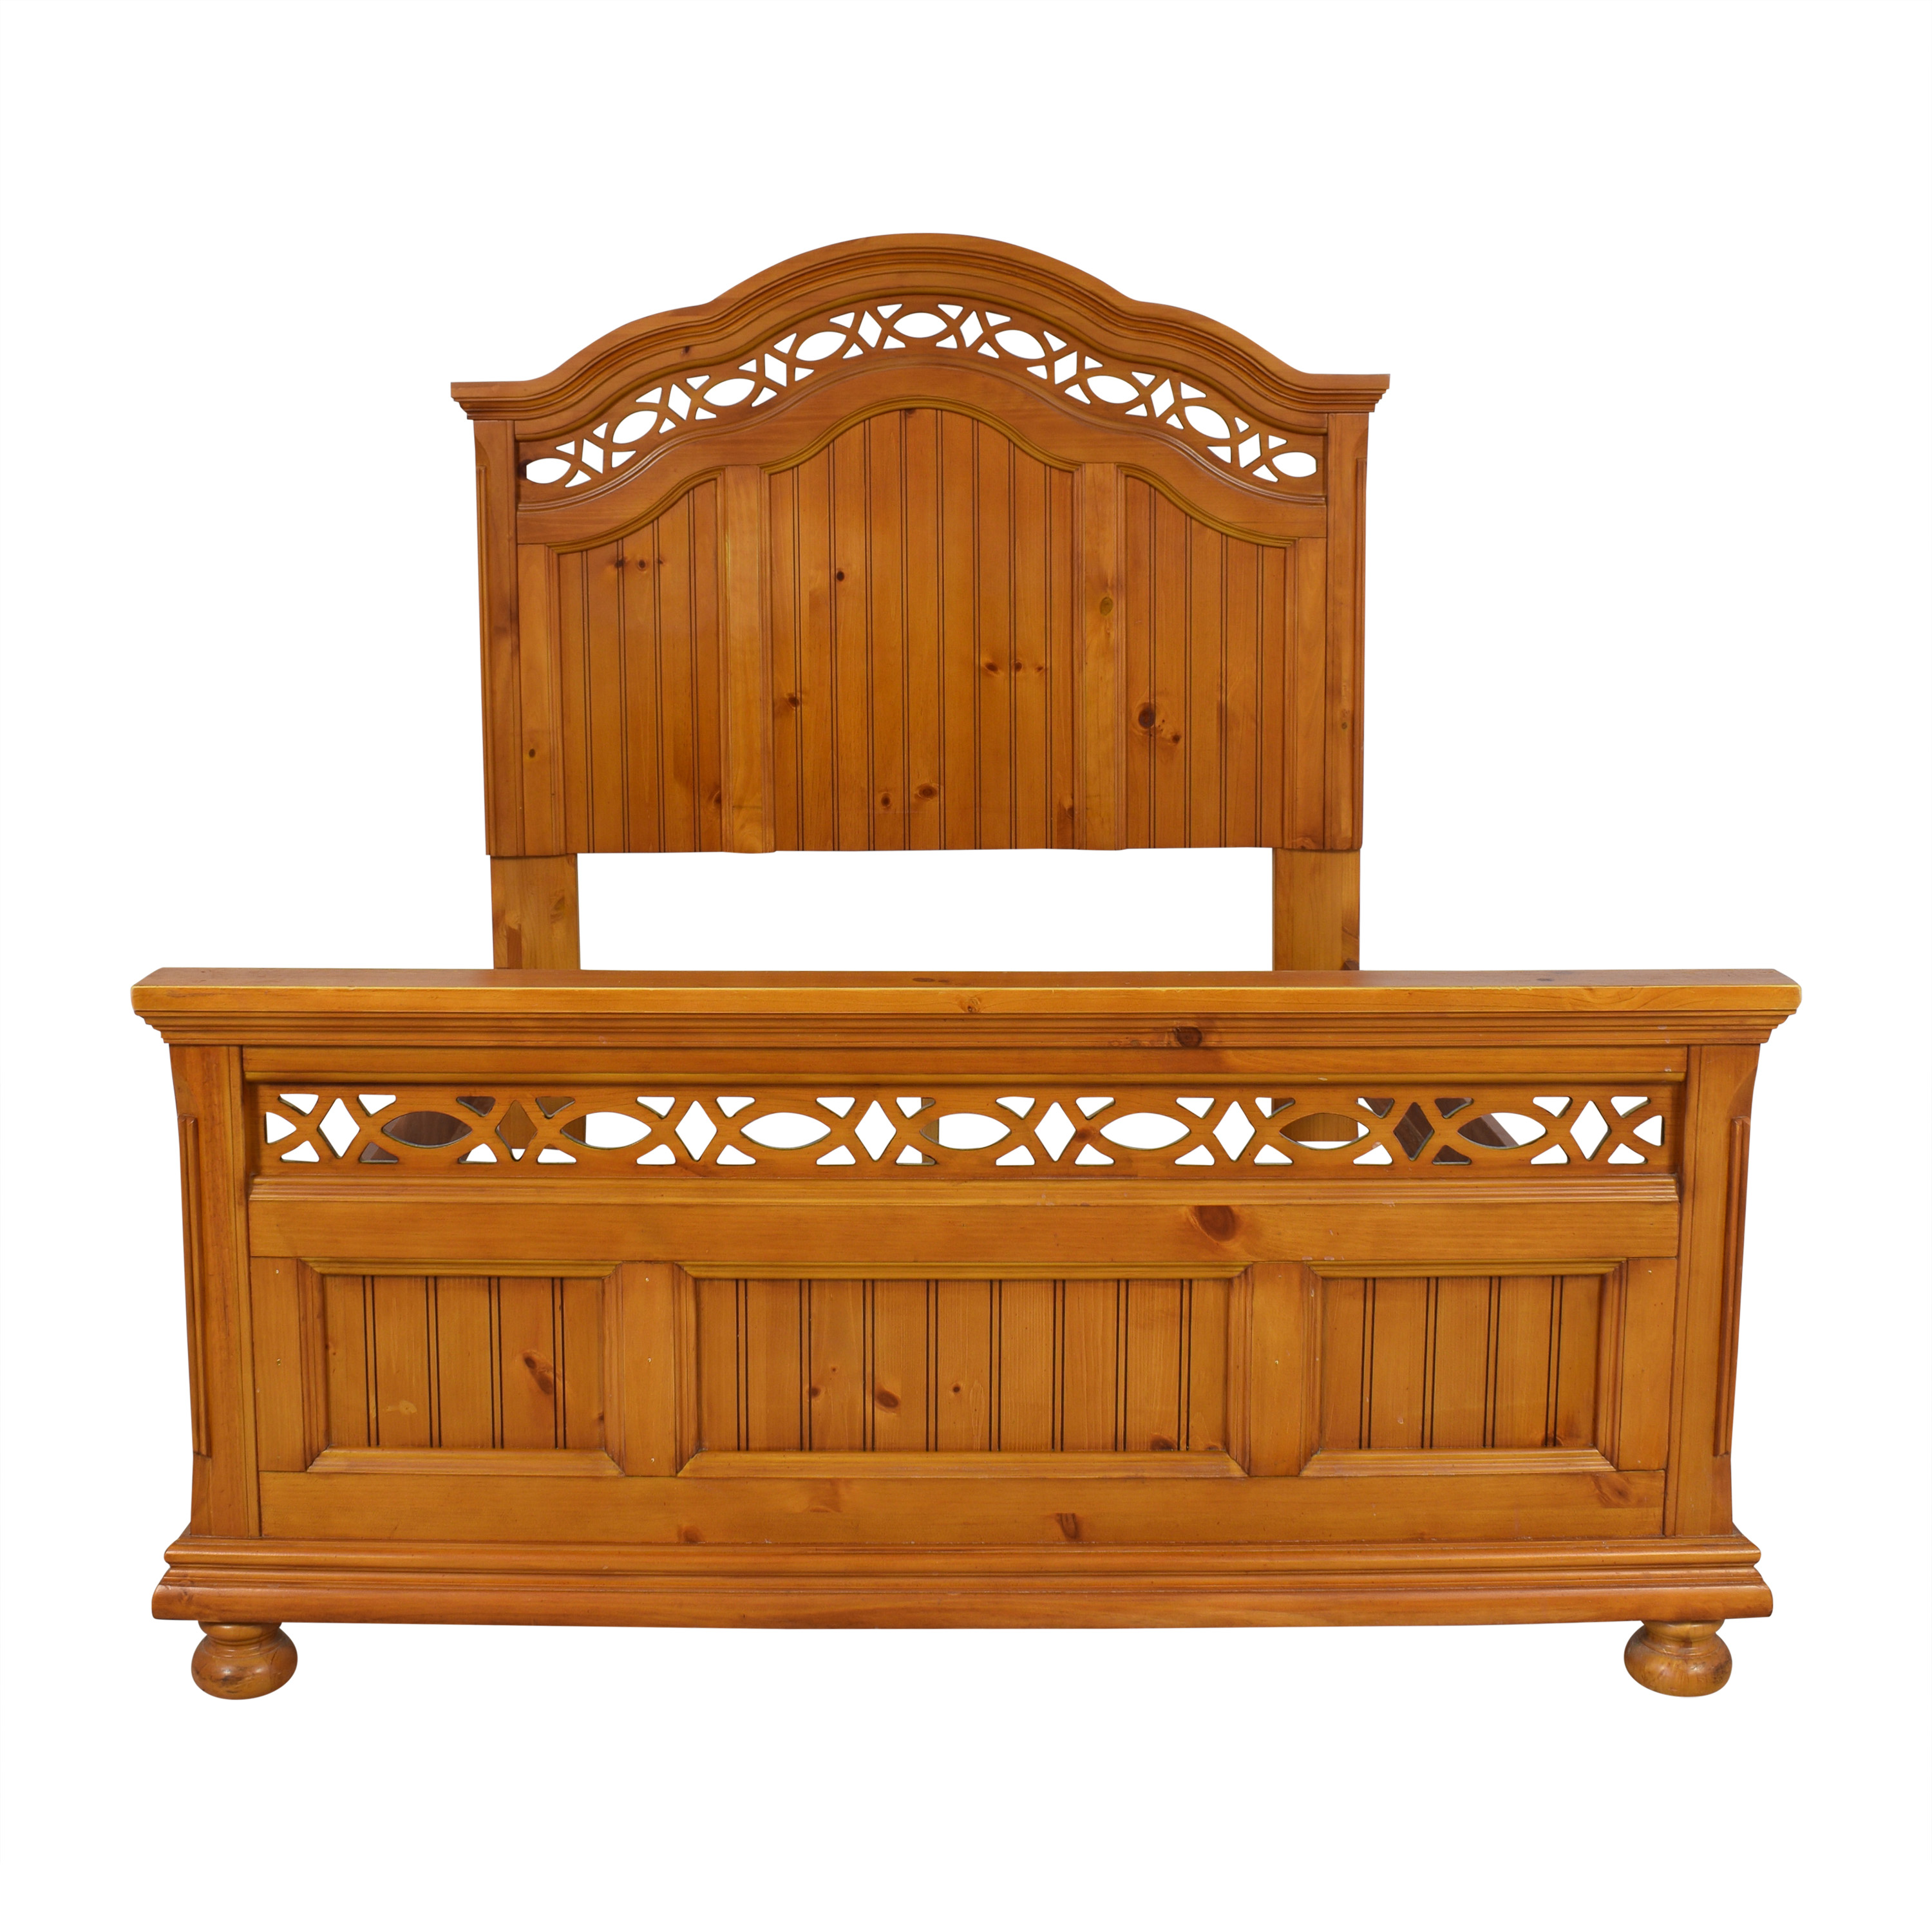 Wooden Queen Bed Frame coupon